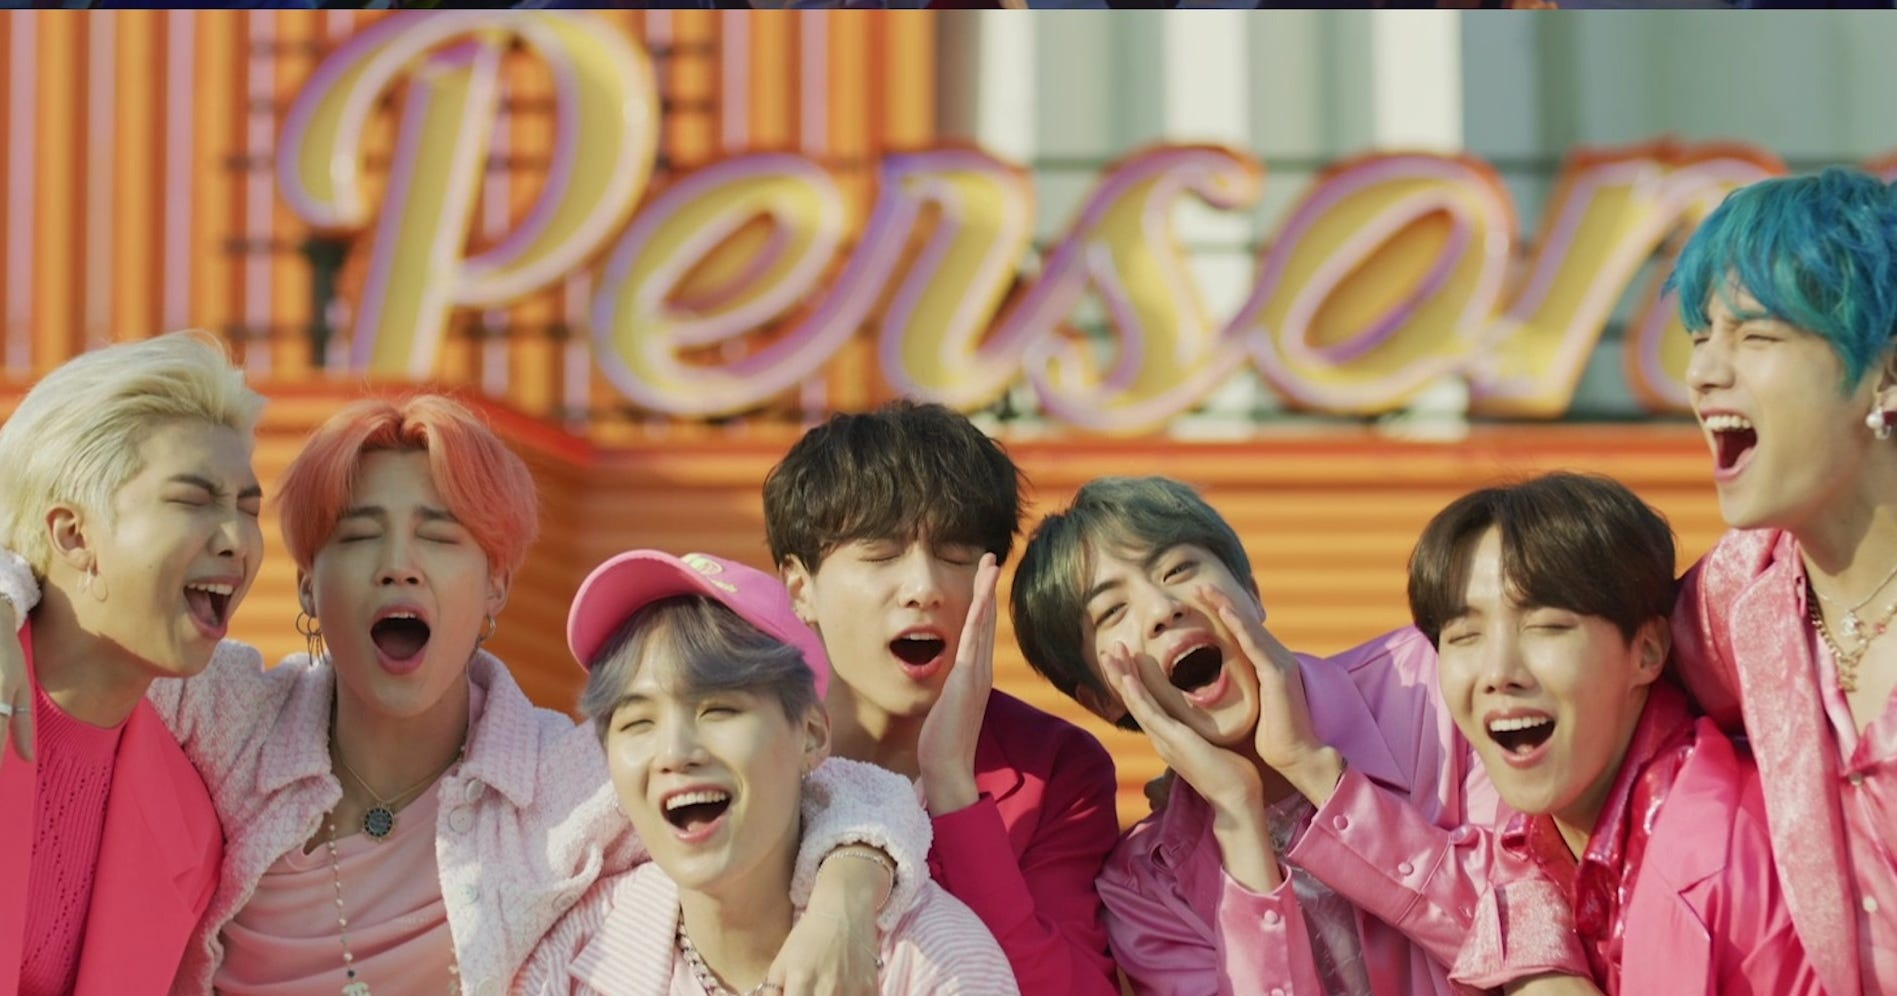 download bts boy with luv mp3